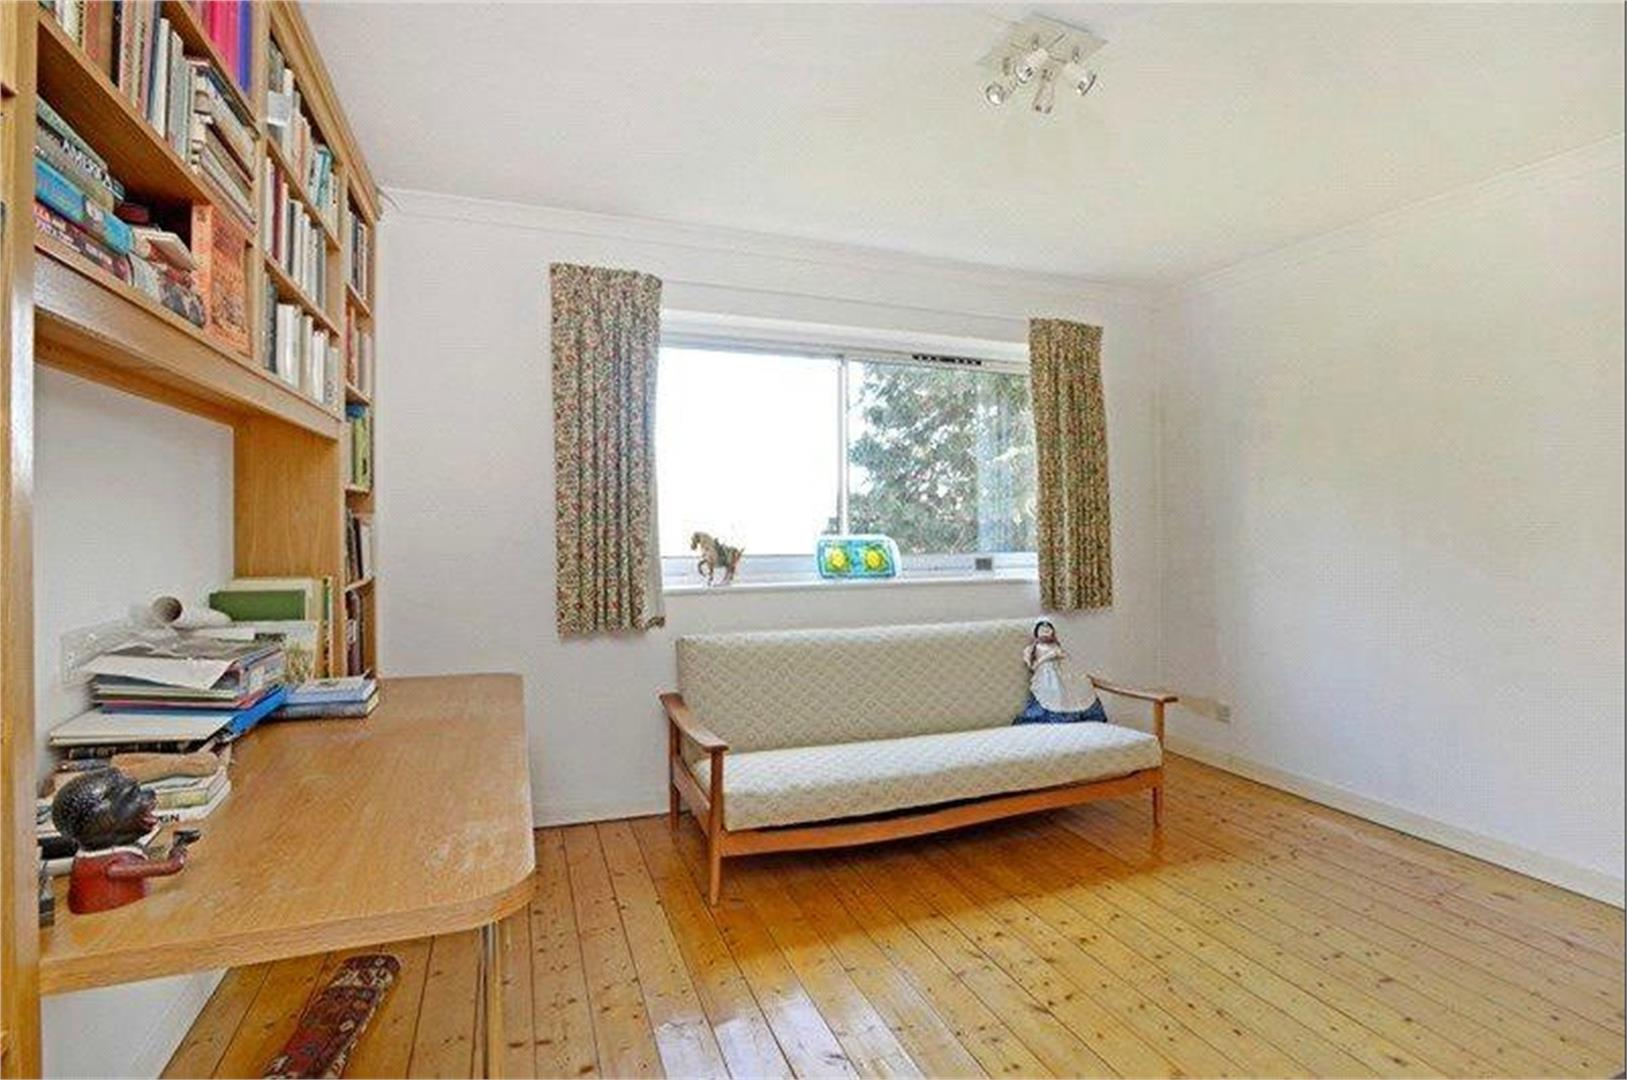 4 bed to rent - (Property Image 6)